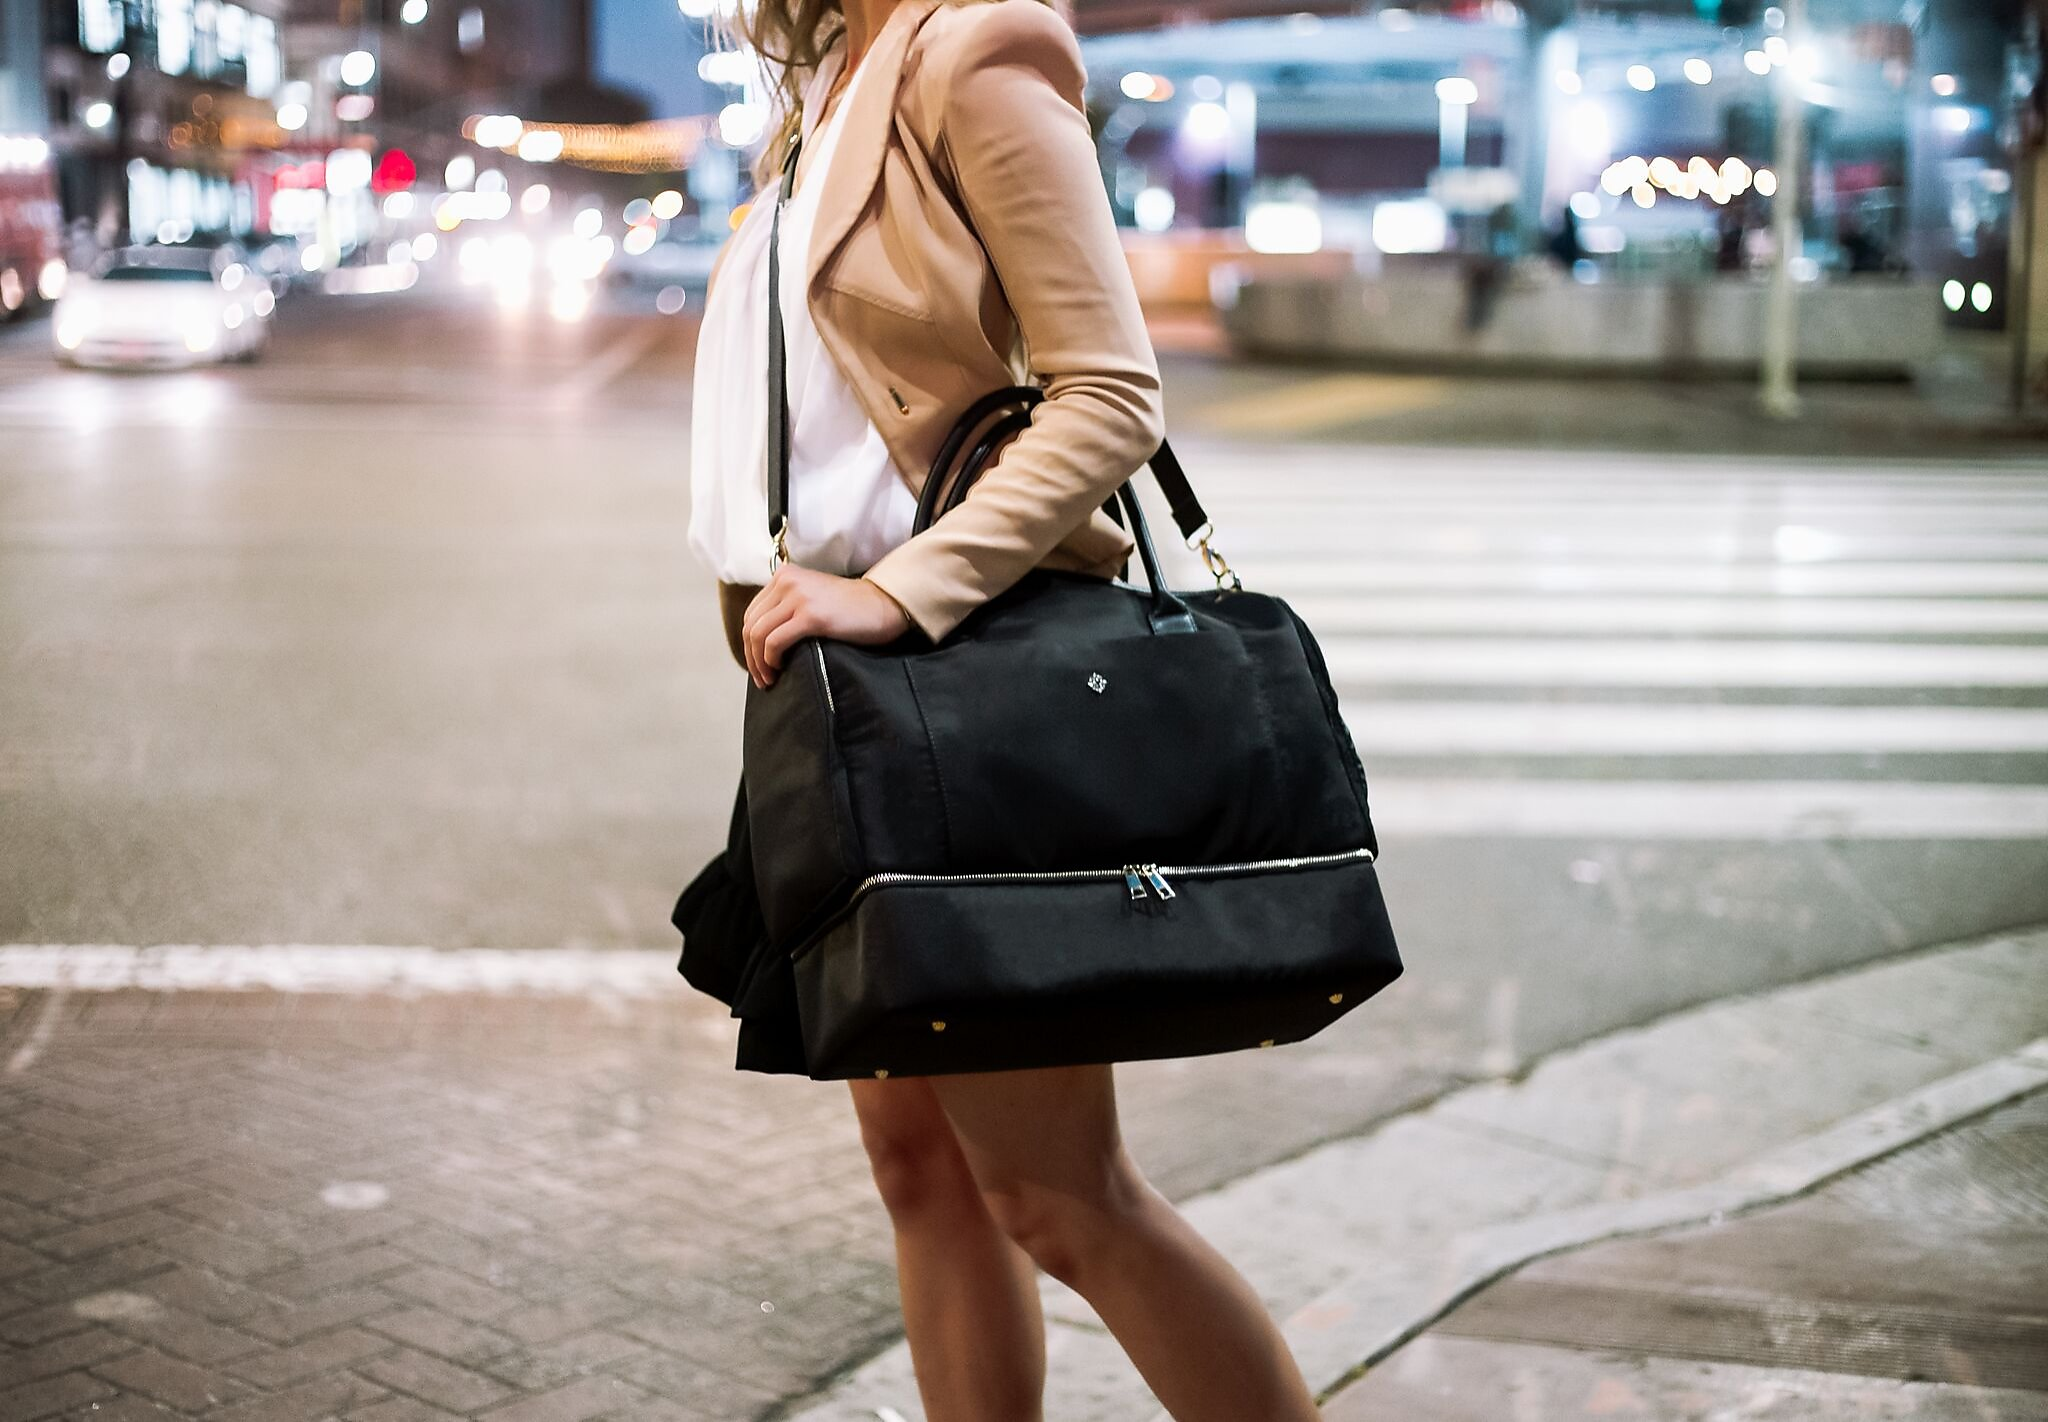 Bag startup Tara   Co. is back with a triple play - SFGate 55c7cdaa5a7eb